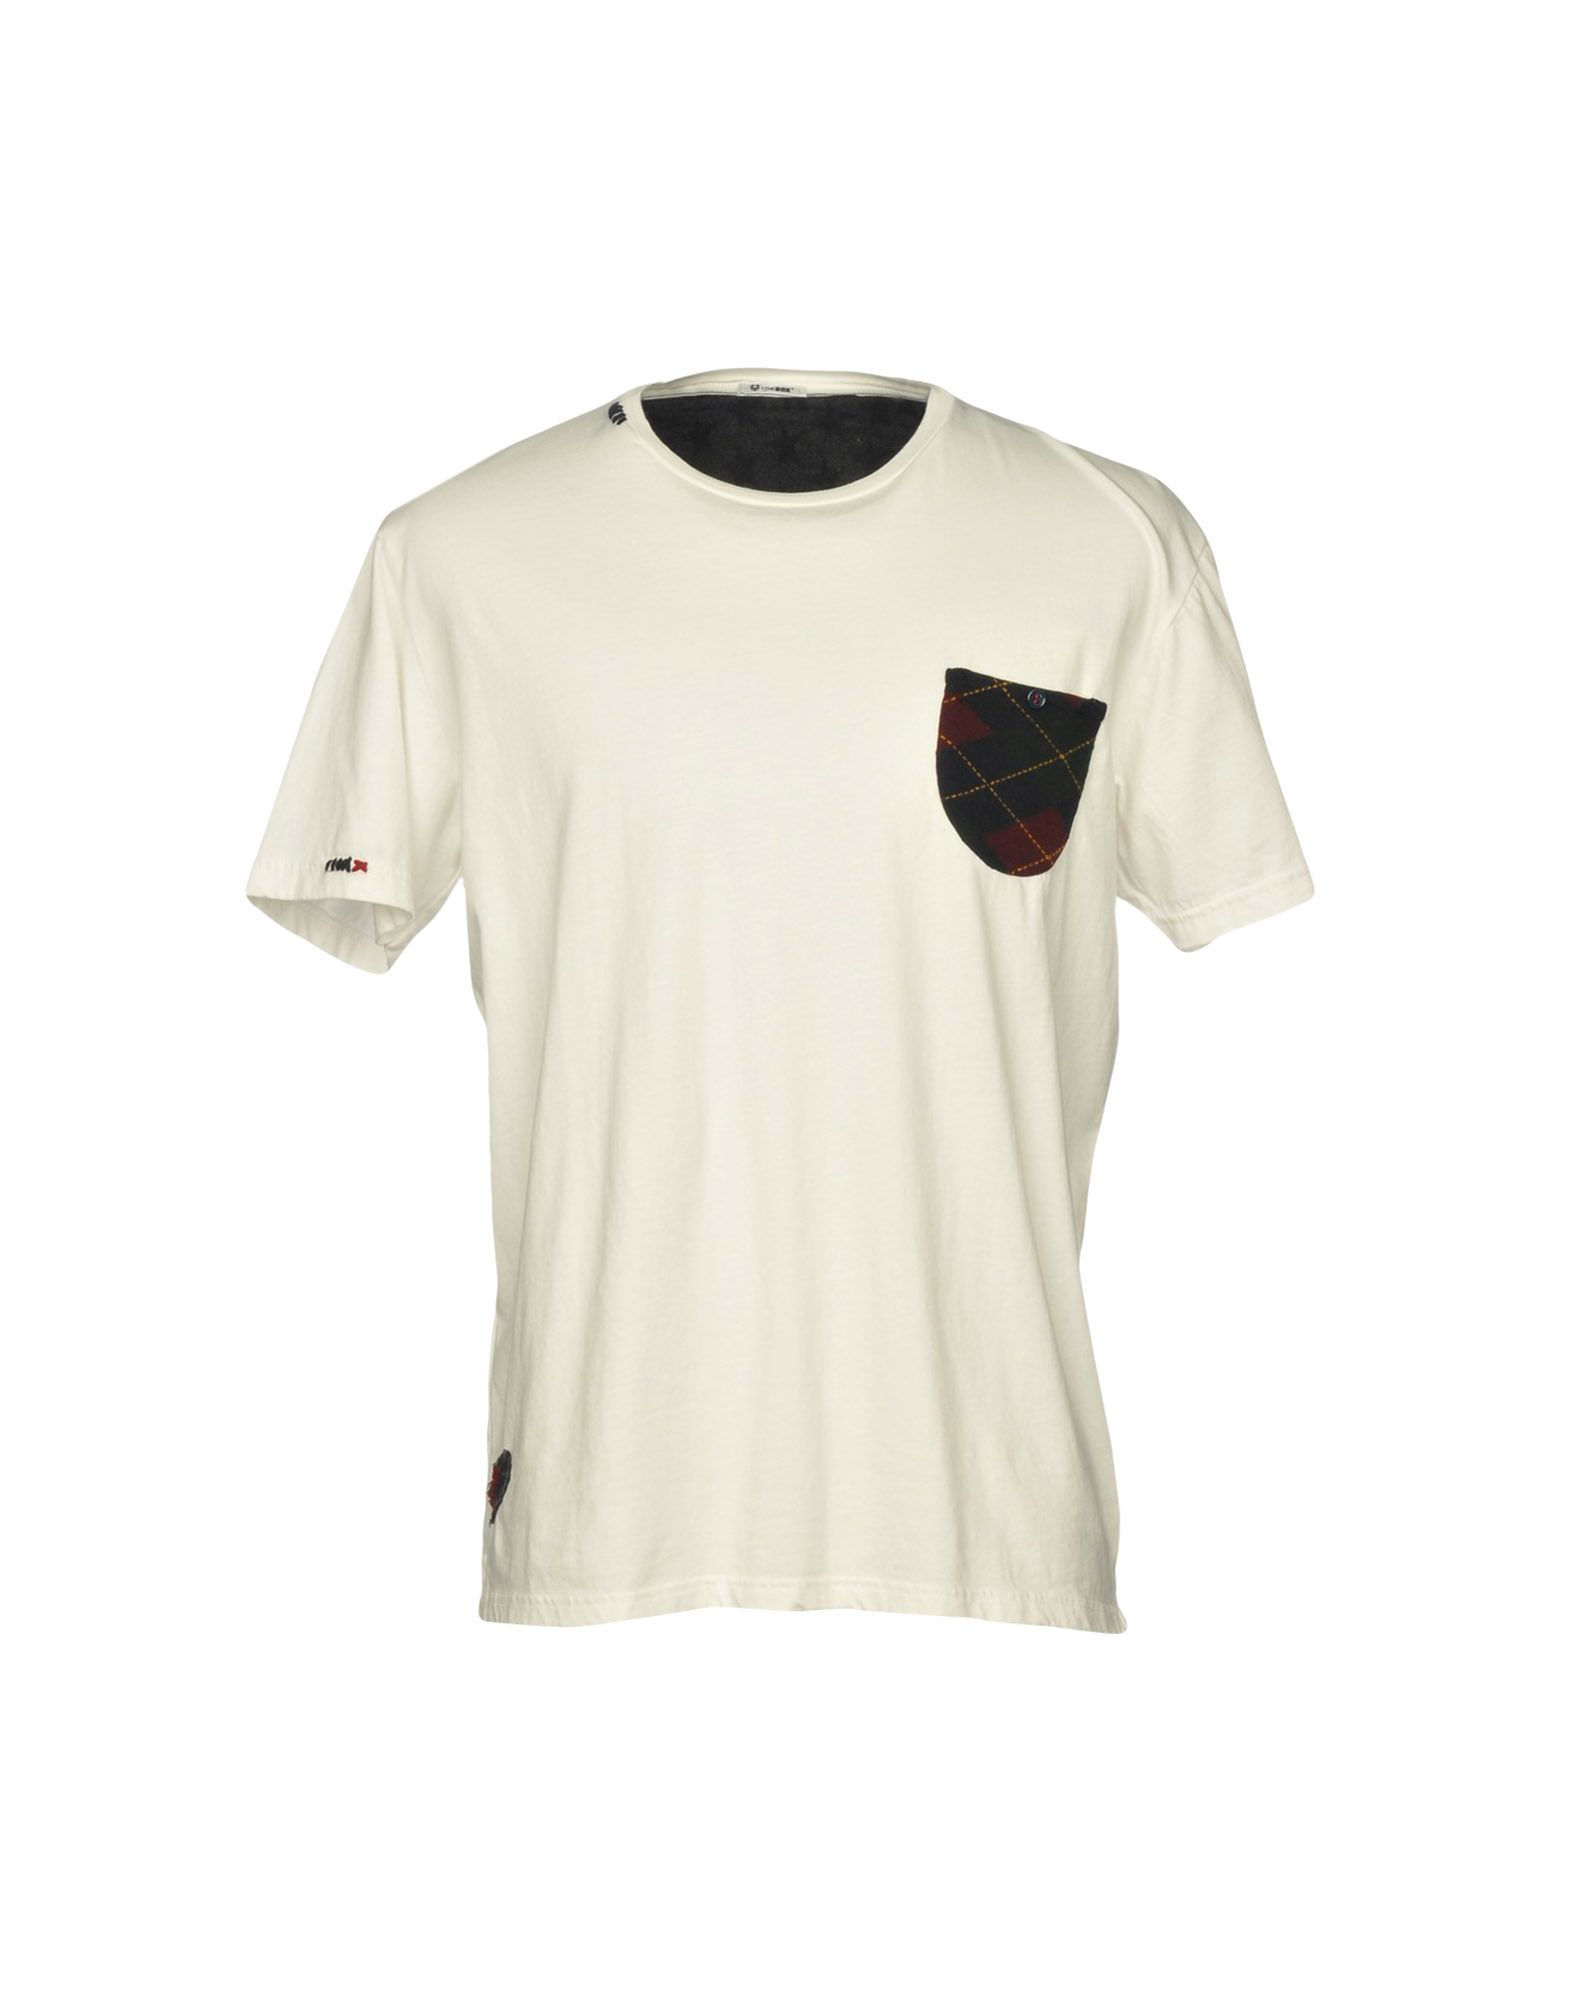 IN THE BOX T-Shirt in White